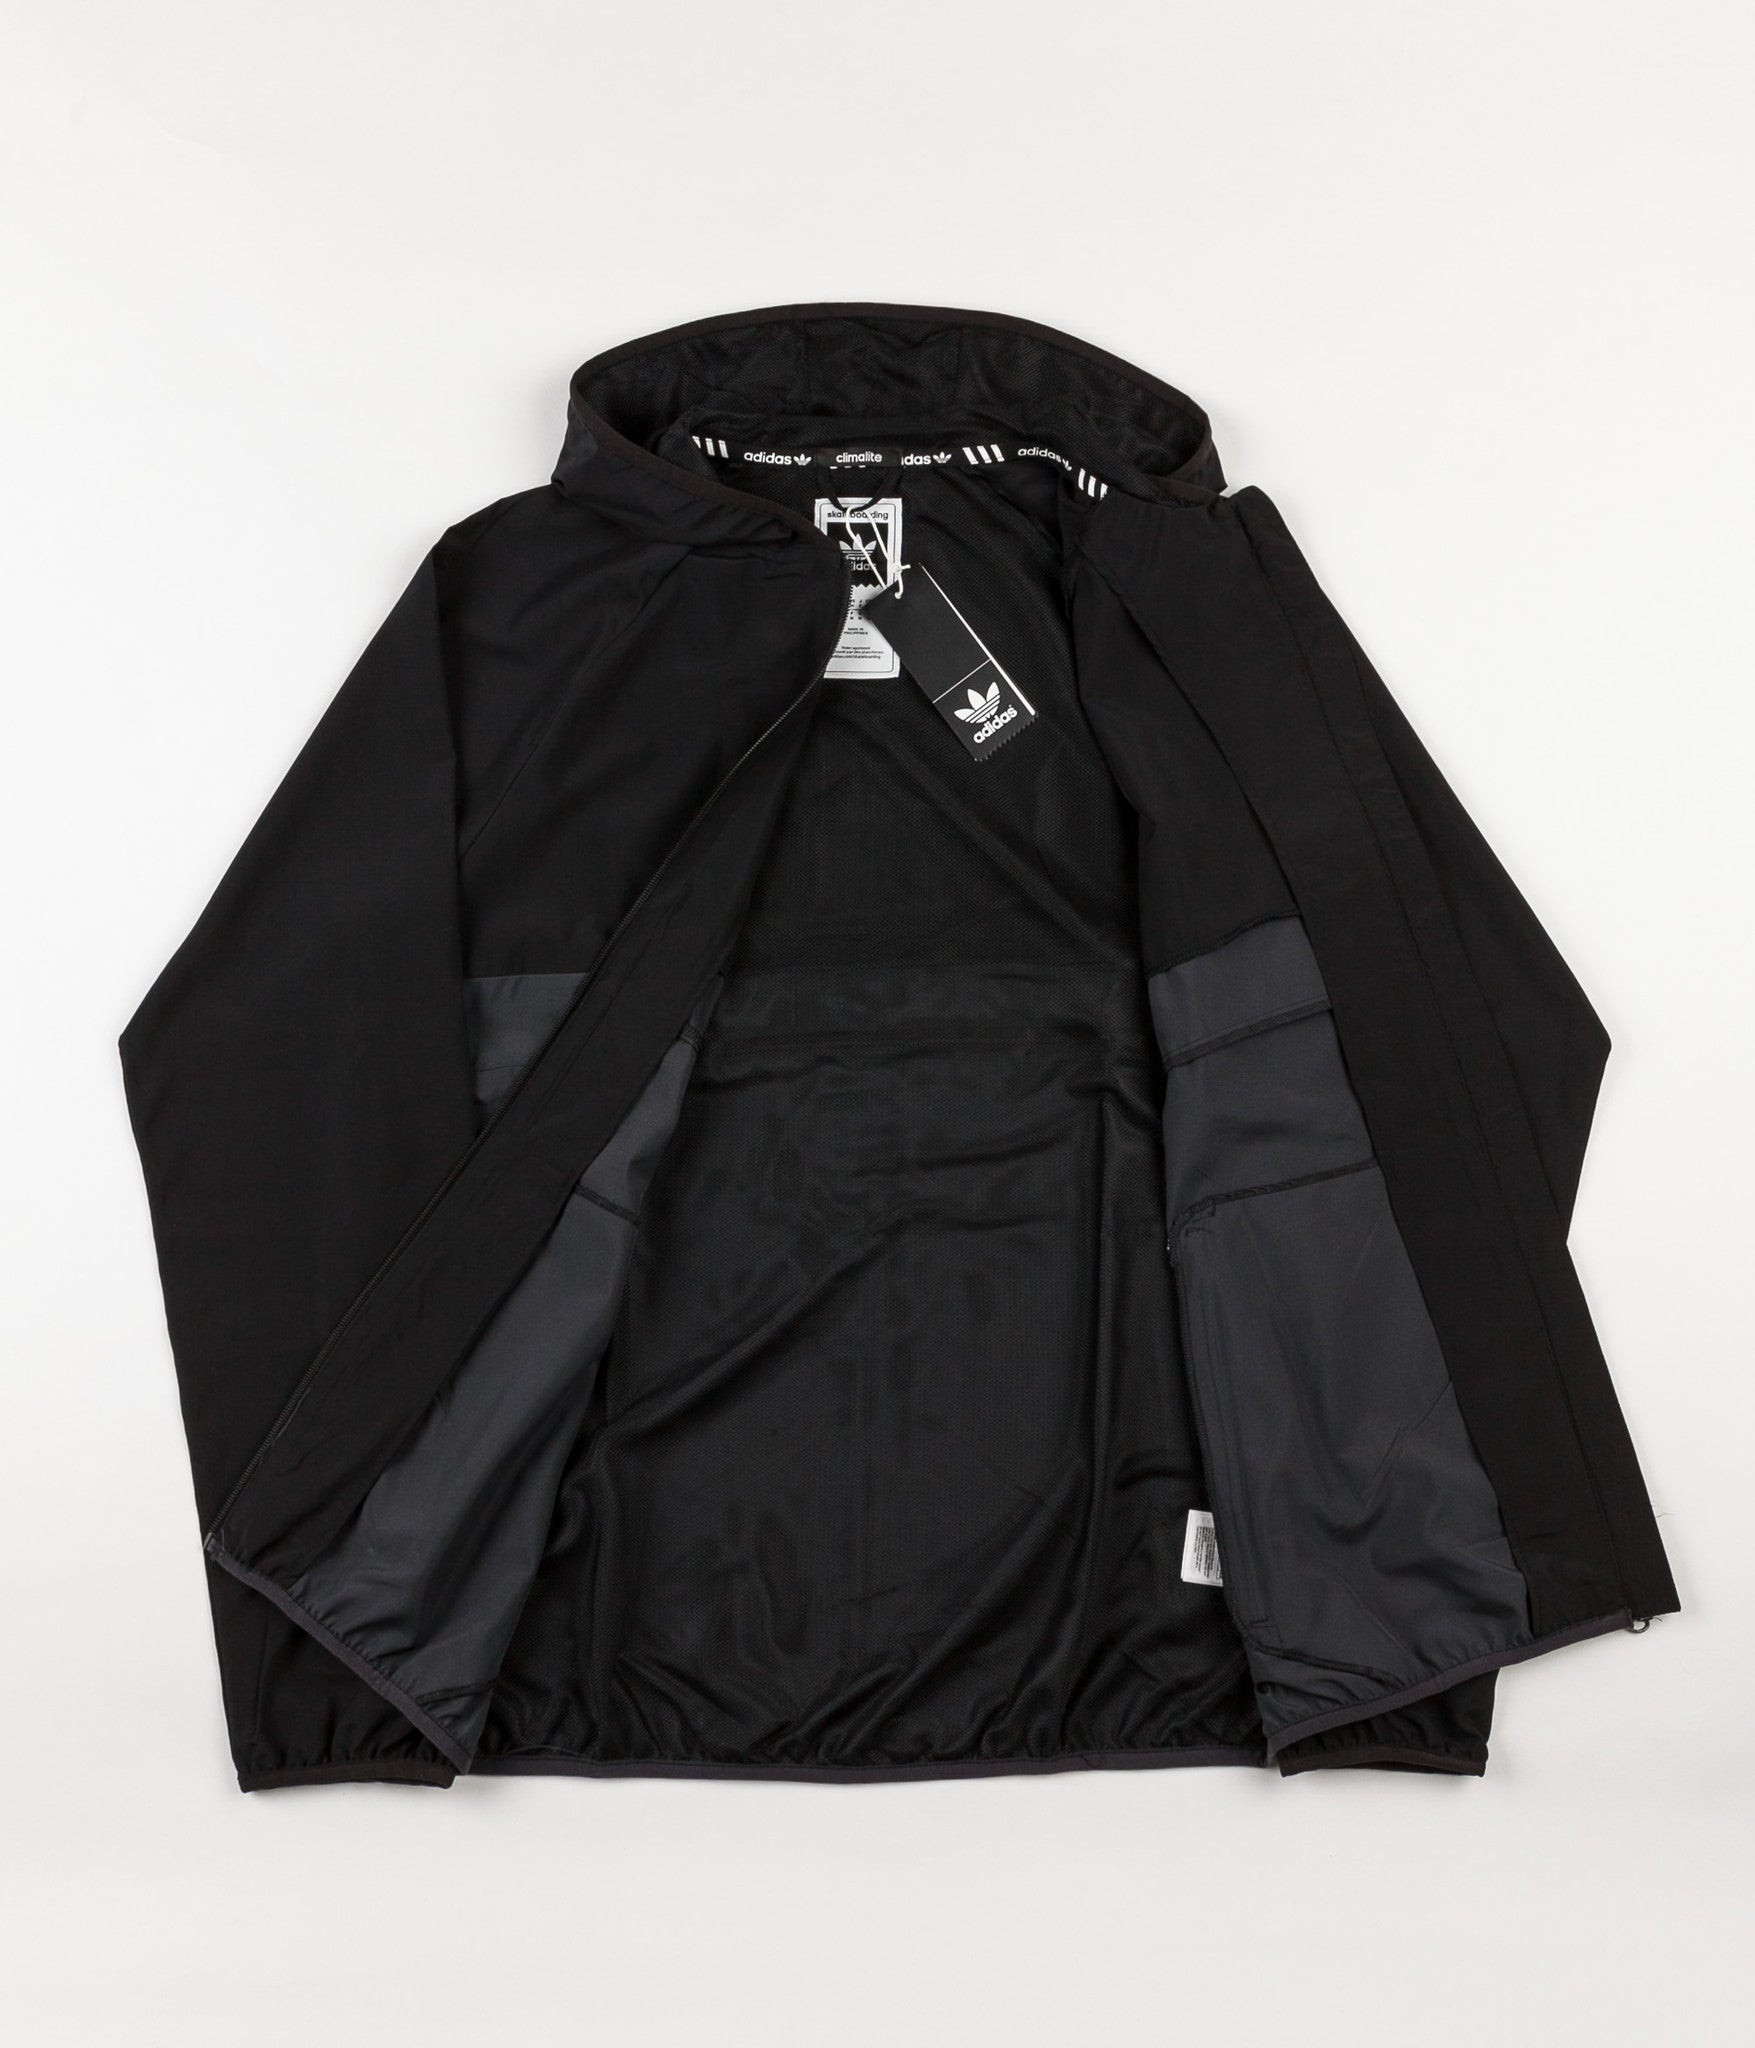 buy popular 430ba bb514 ... Adidas Blackbird Windbreaker Jacket - Black   Carbon ...